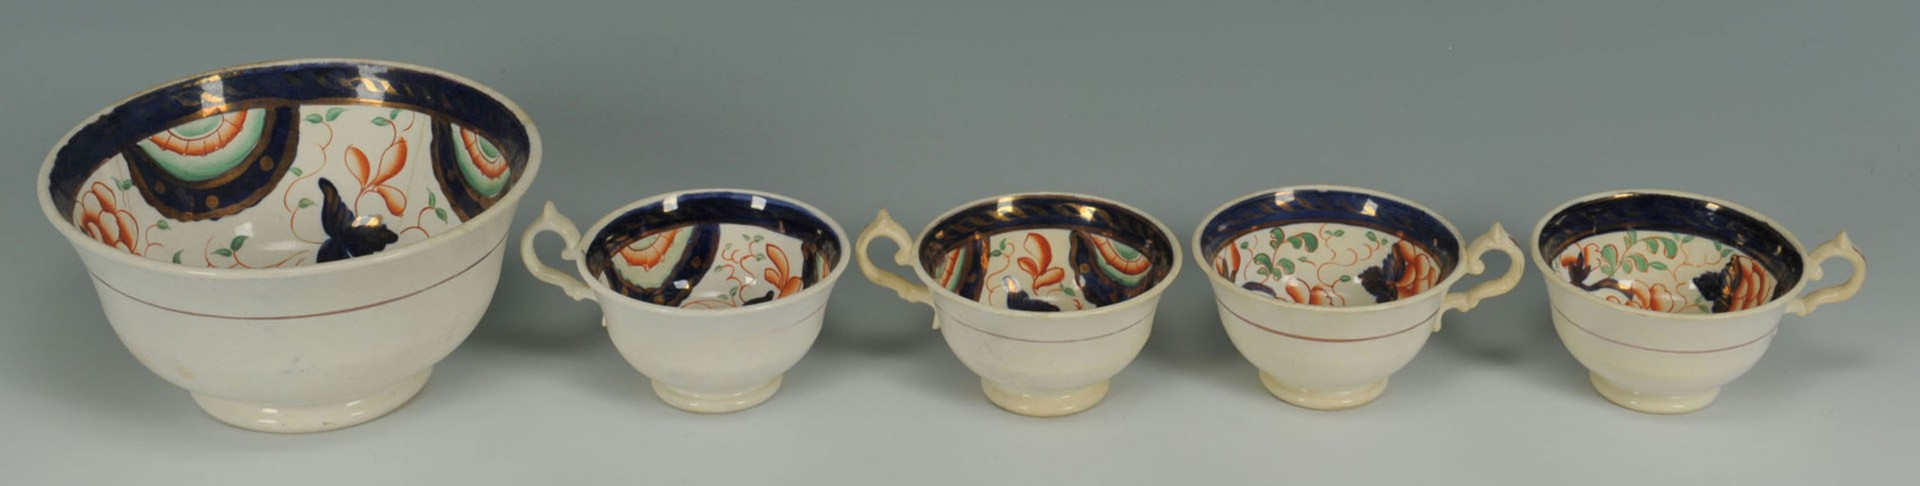 Lot 2872329: 15 pieces Gaudy Dutch pottery